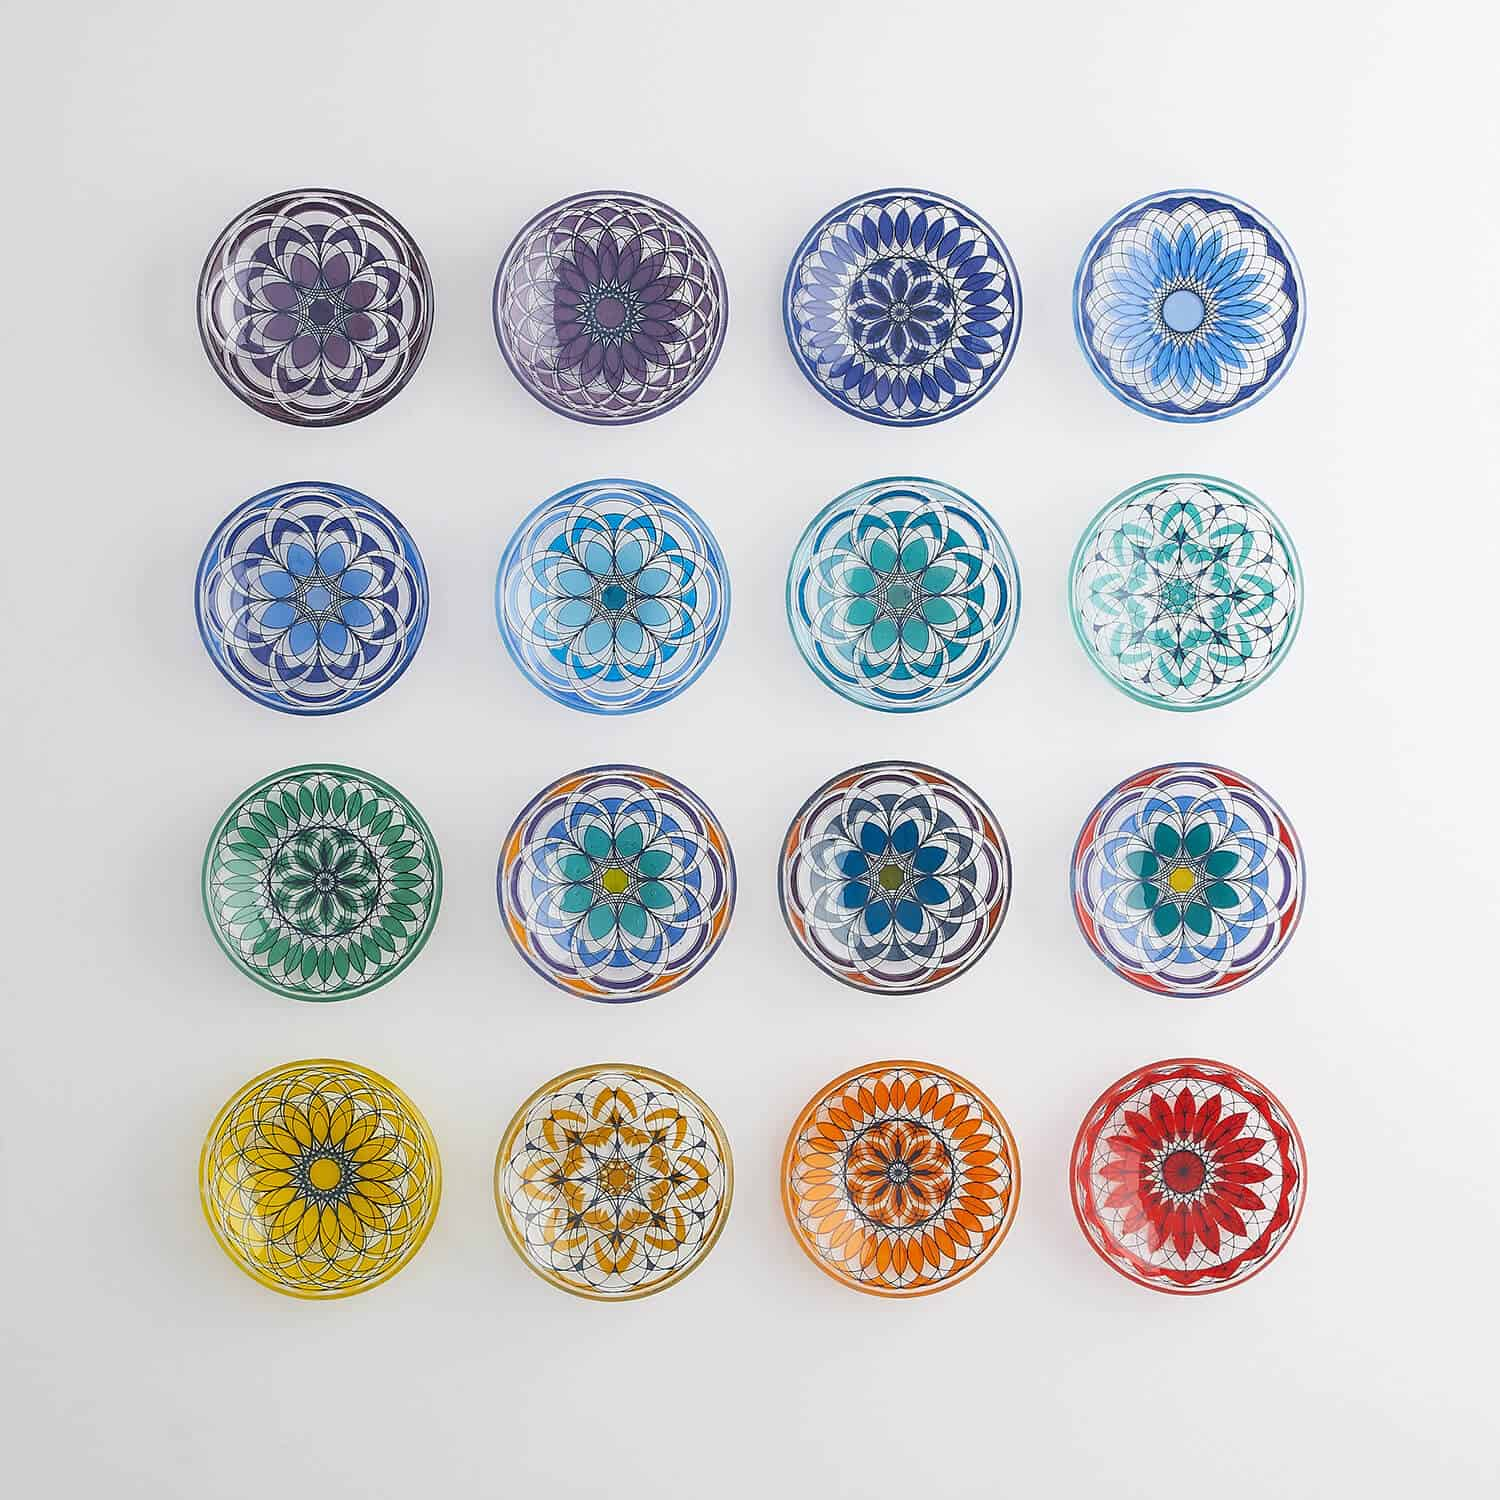 Geometric patterned glassware bowls by glass artist Helen Tiffany photographed from above with soft diffused light